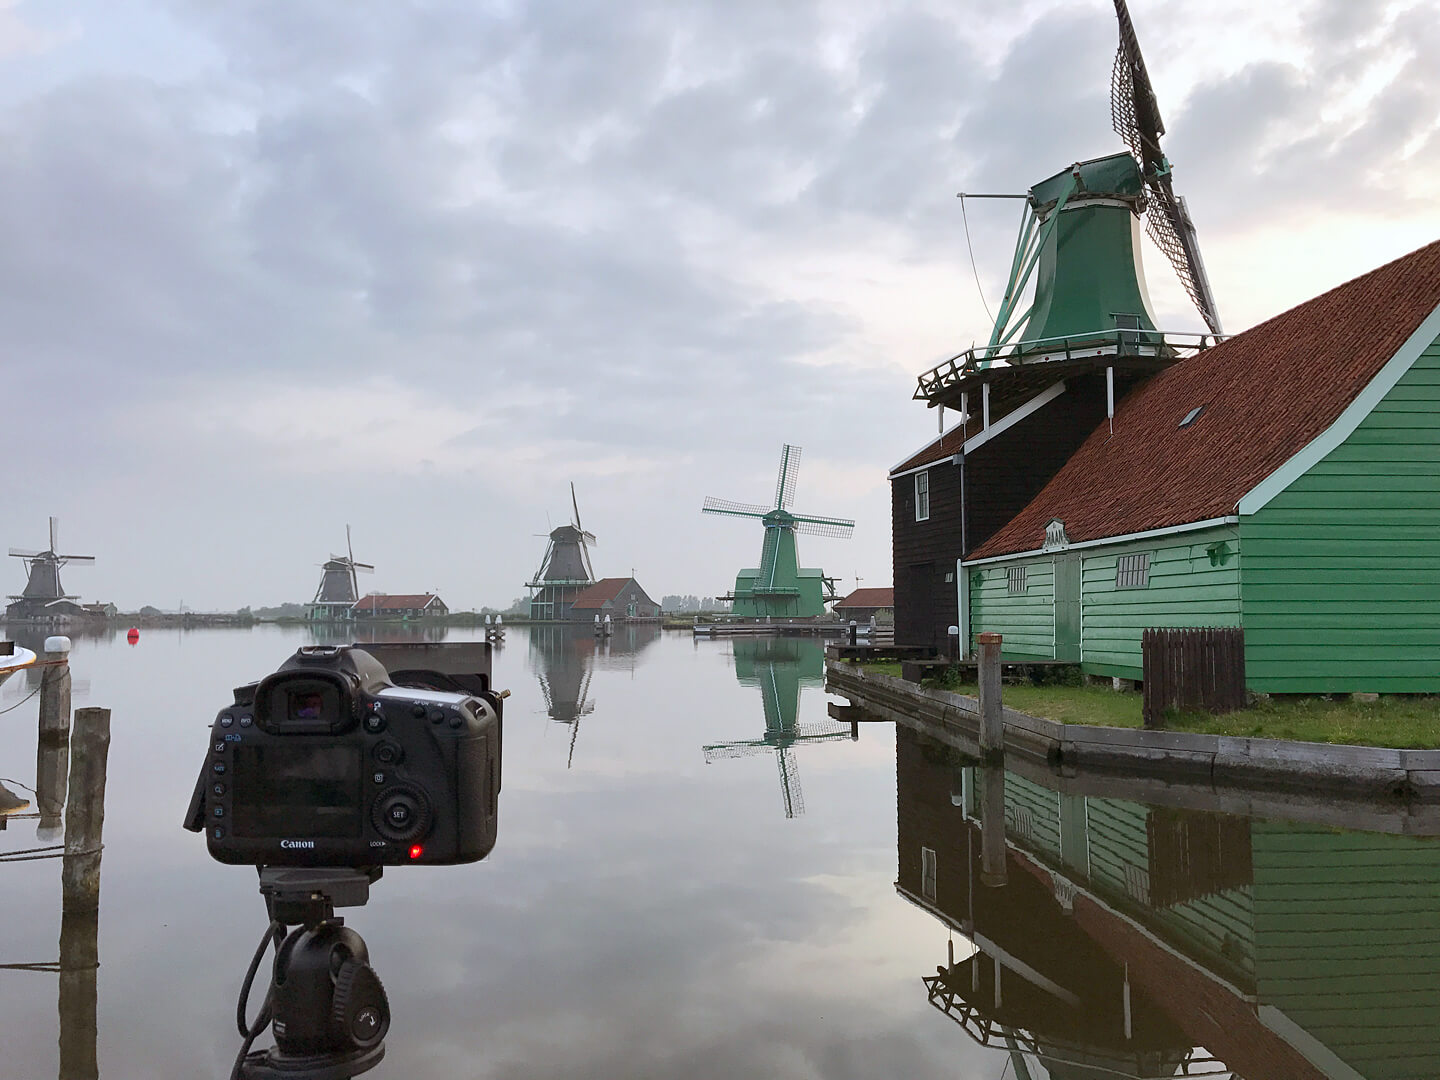 Making of: Filterfotografie bei den Windmühlen in Zaanse Schans